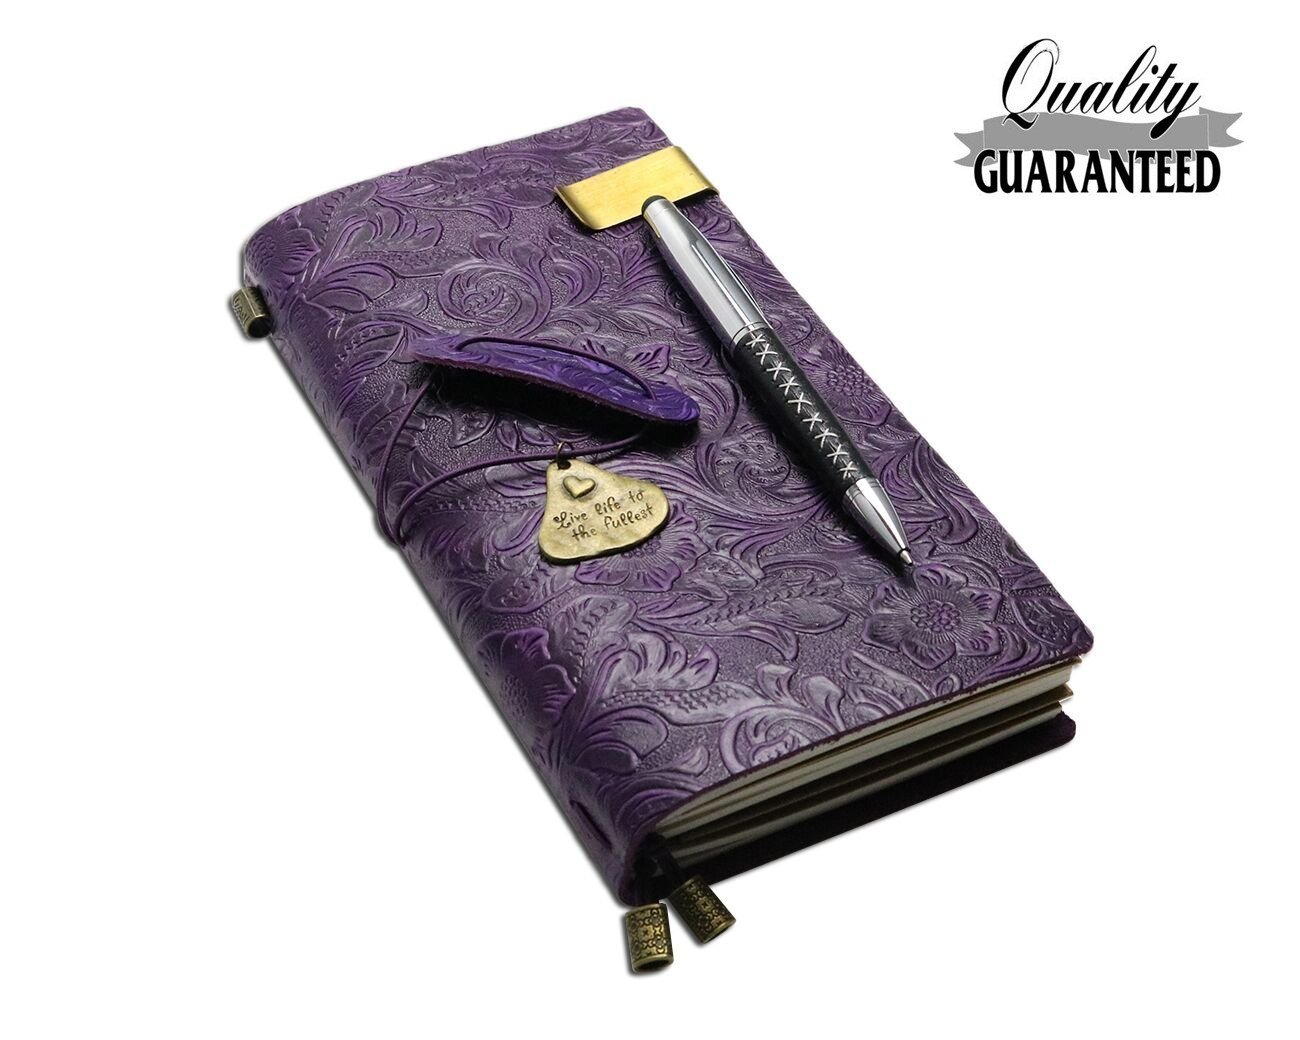 Travelers Notebook 100% Vintage Refillable Leather Journal Flower Embossed Refillable Traveler Notebook Travel Journal with Ballpoint Pen, Travel Gifts for Men & Women, Perfect to Write in-Purple